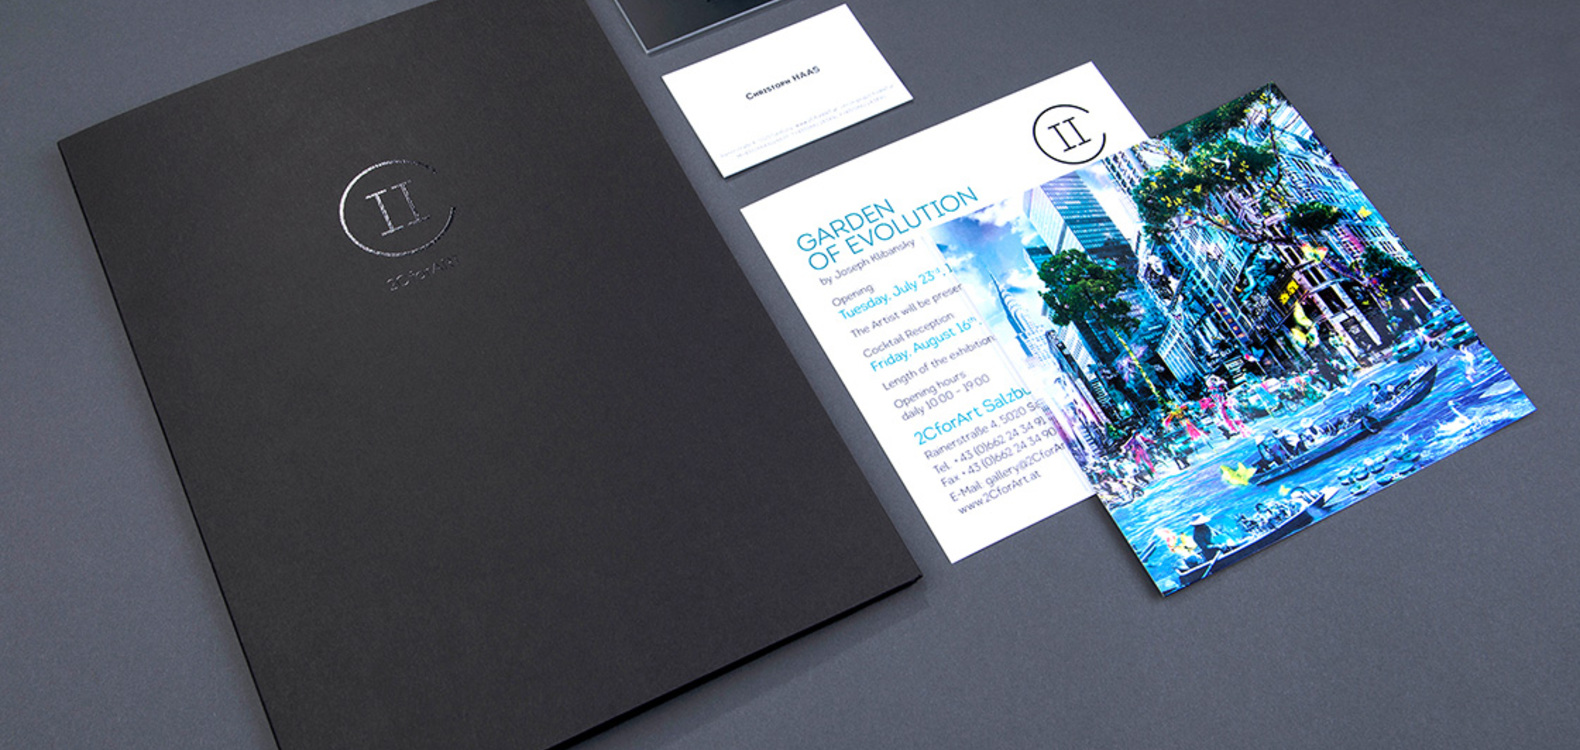 Corporate Design: Gestaltungskonzept, 2C for ART